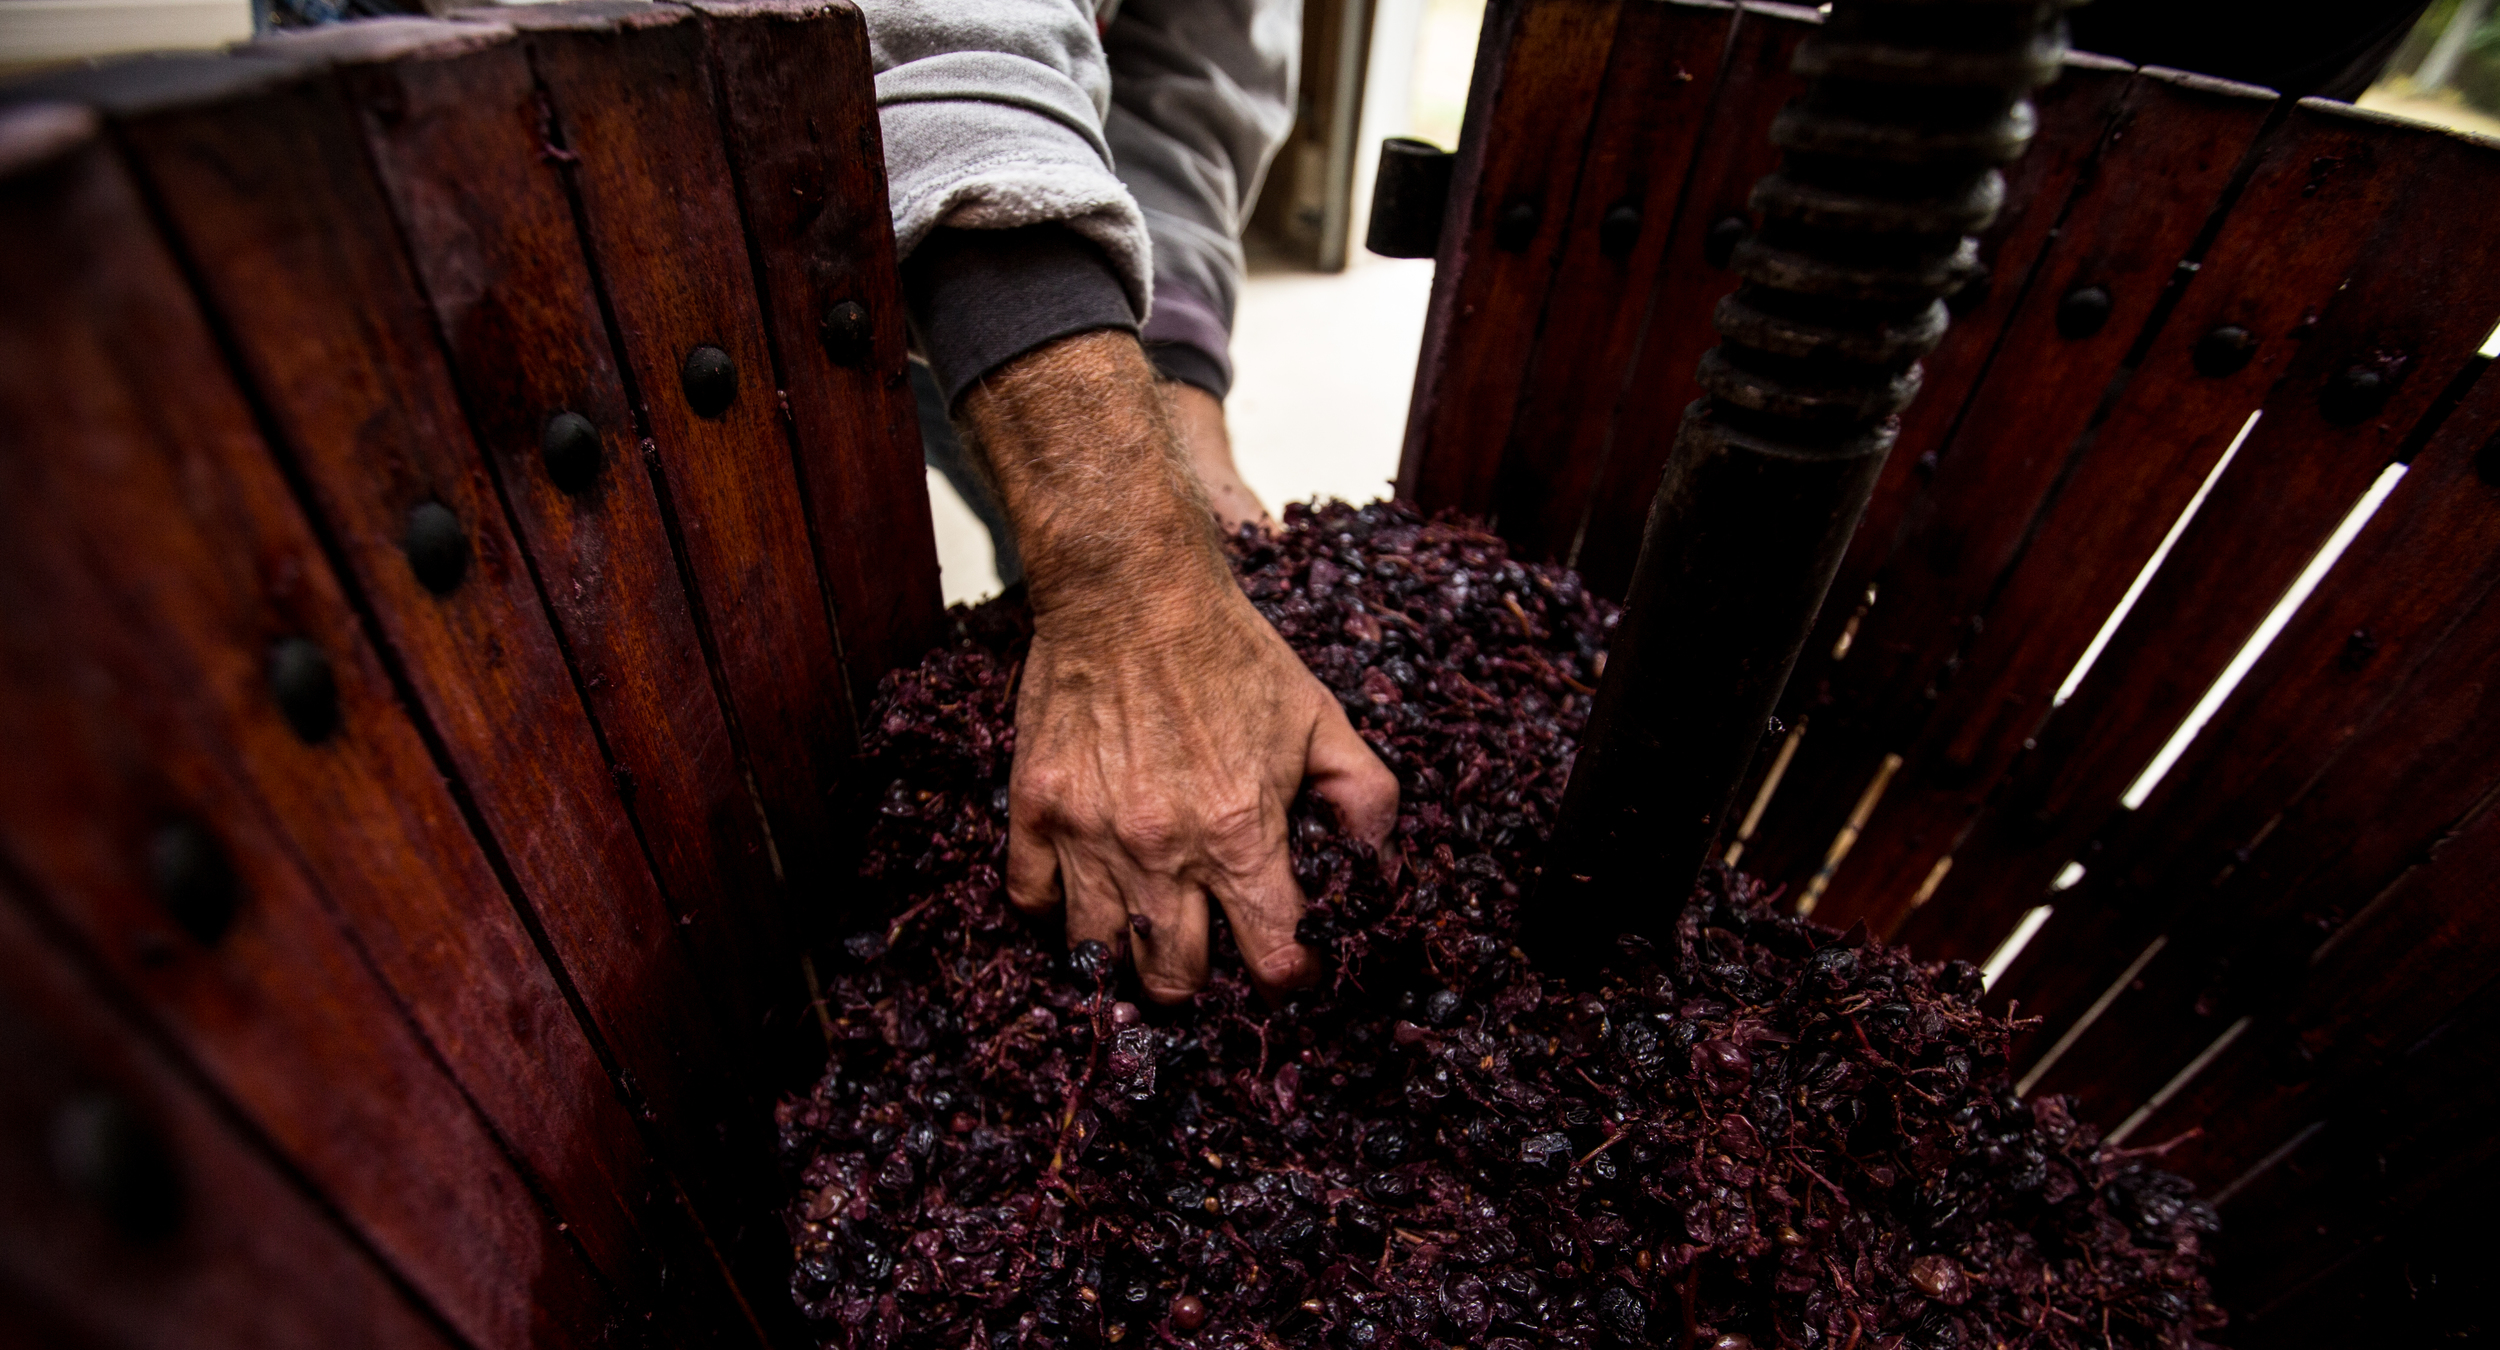 WINEMAKING_100515-7.jpg